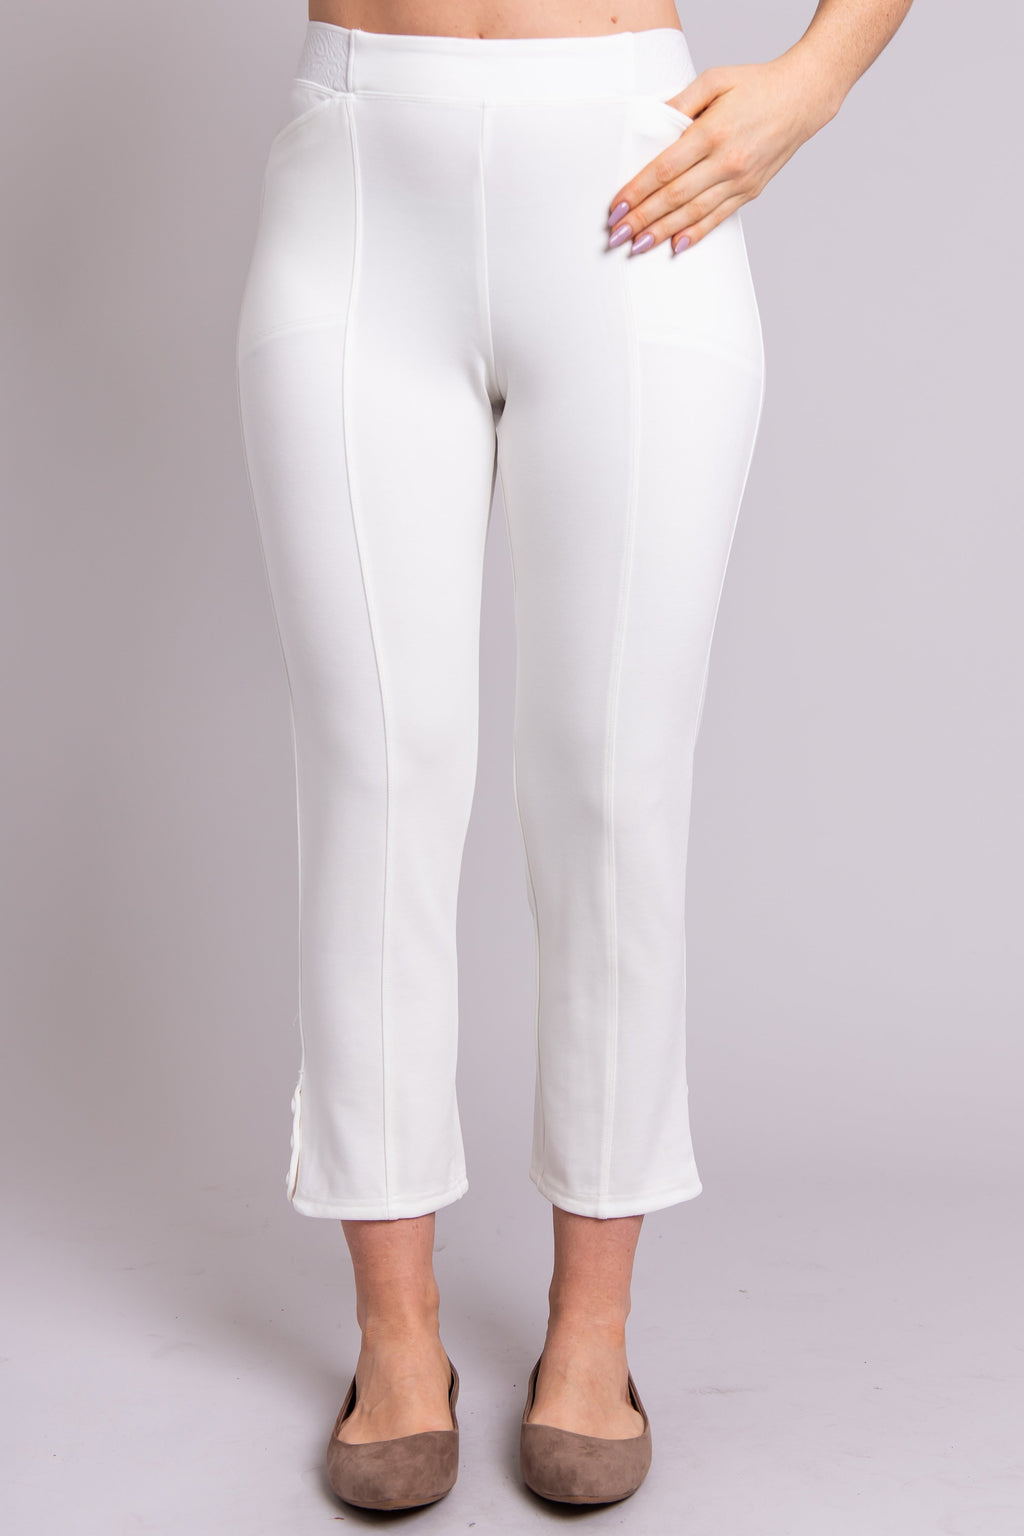 Nadine Pant, White, Modal - Blue Sky Clothing Co